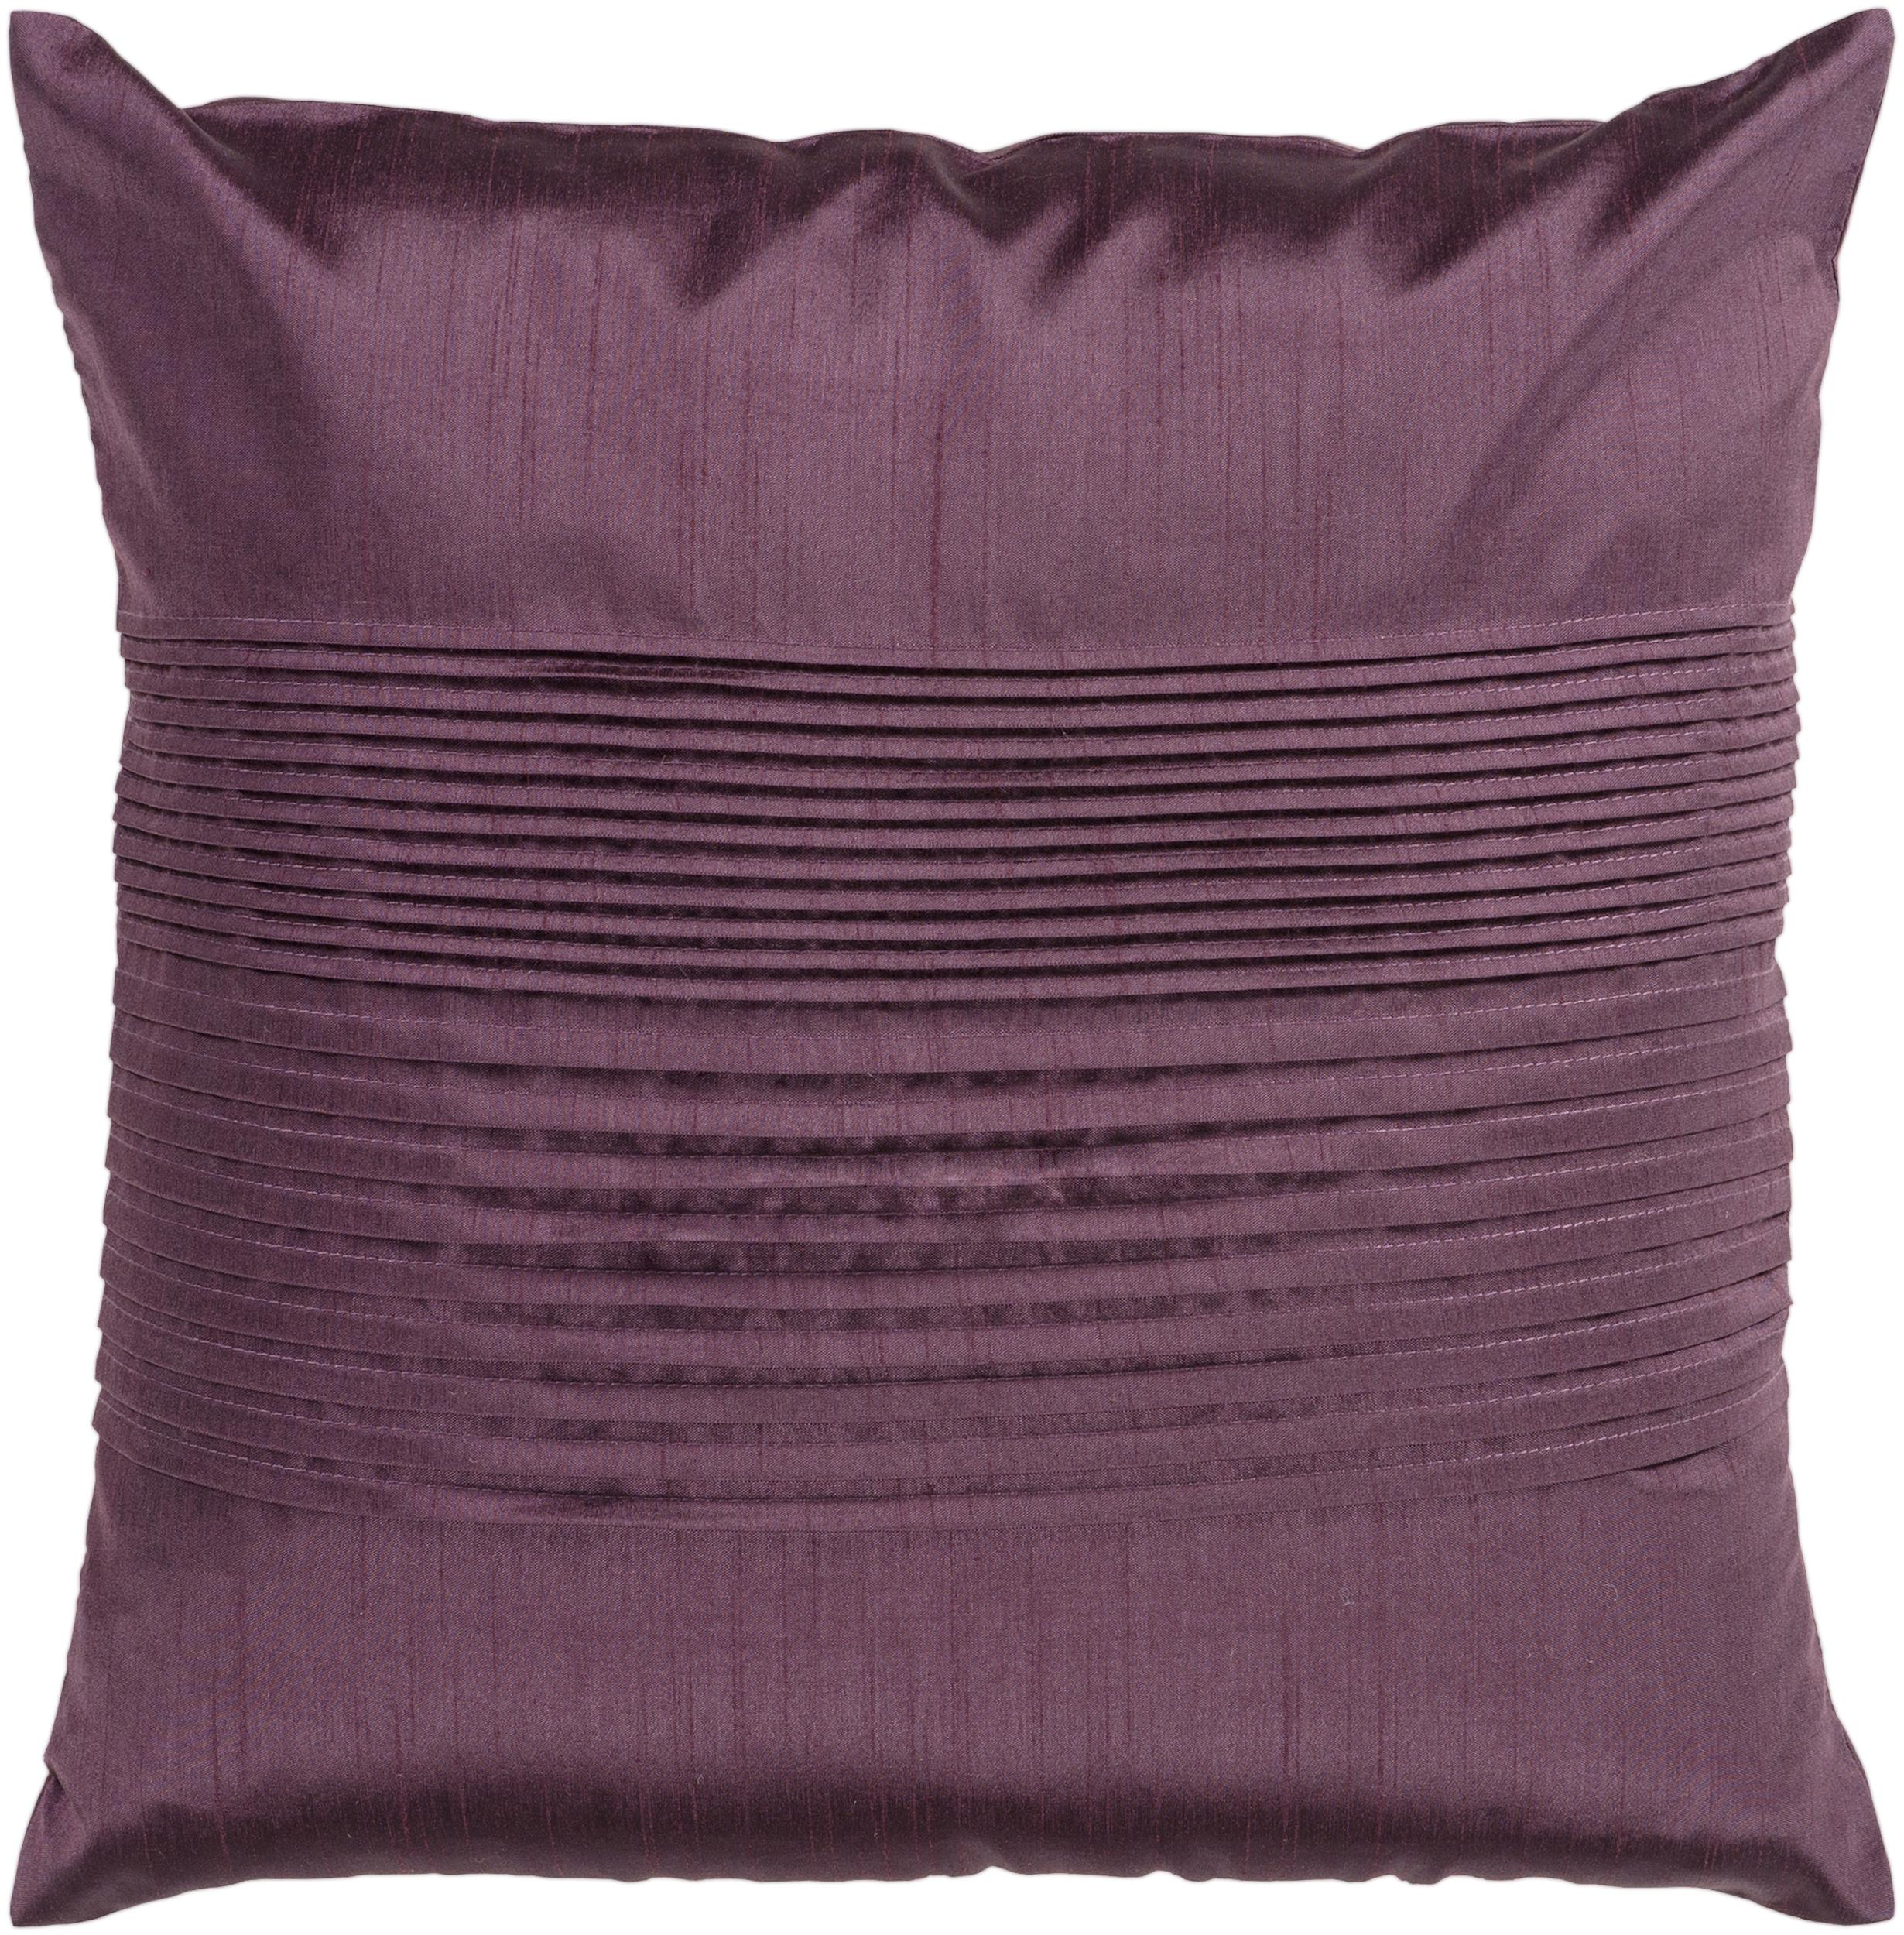 "Surya Pillows 22"" x 22"" Pillow - Item Number: HH016-2222P"